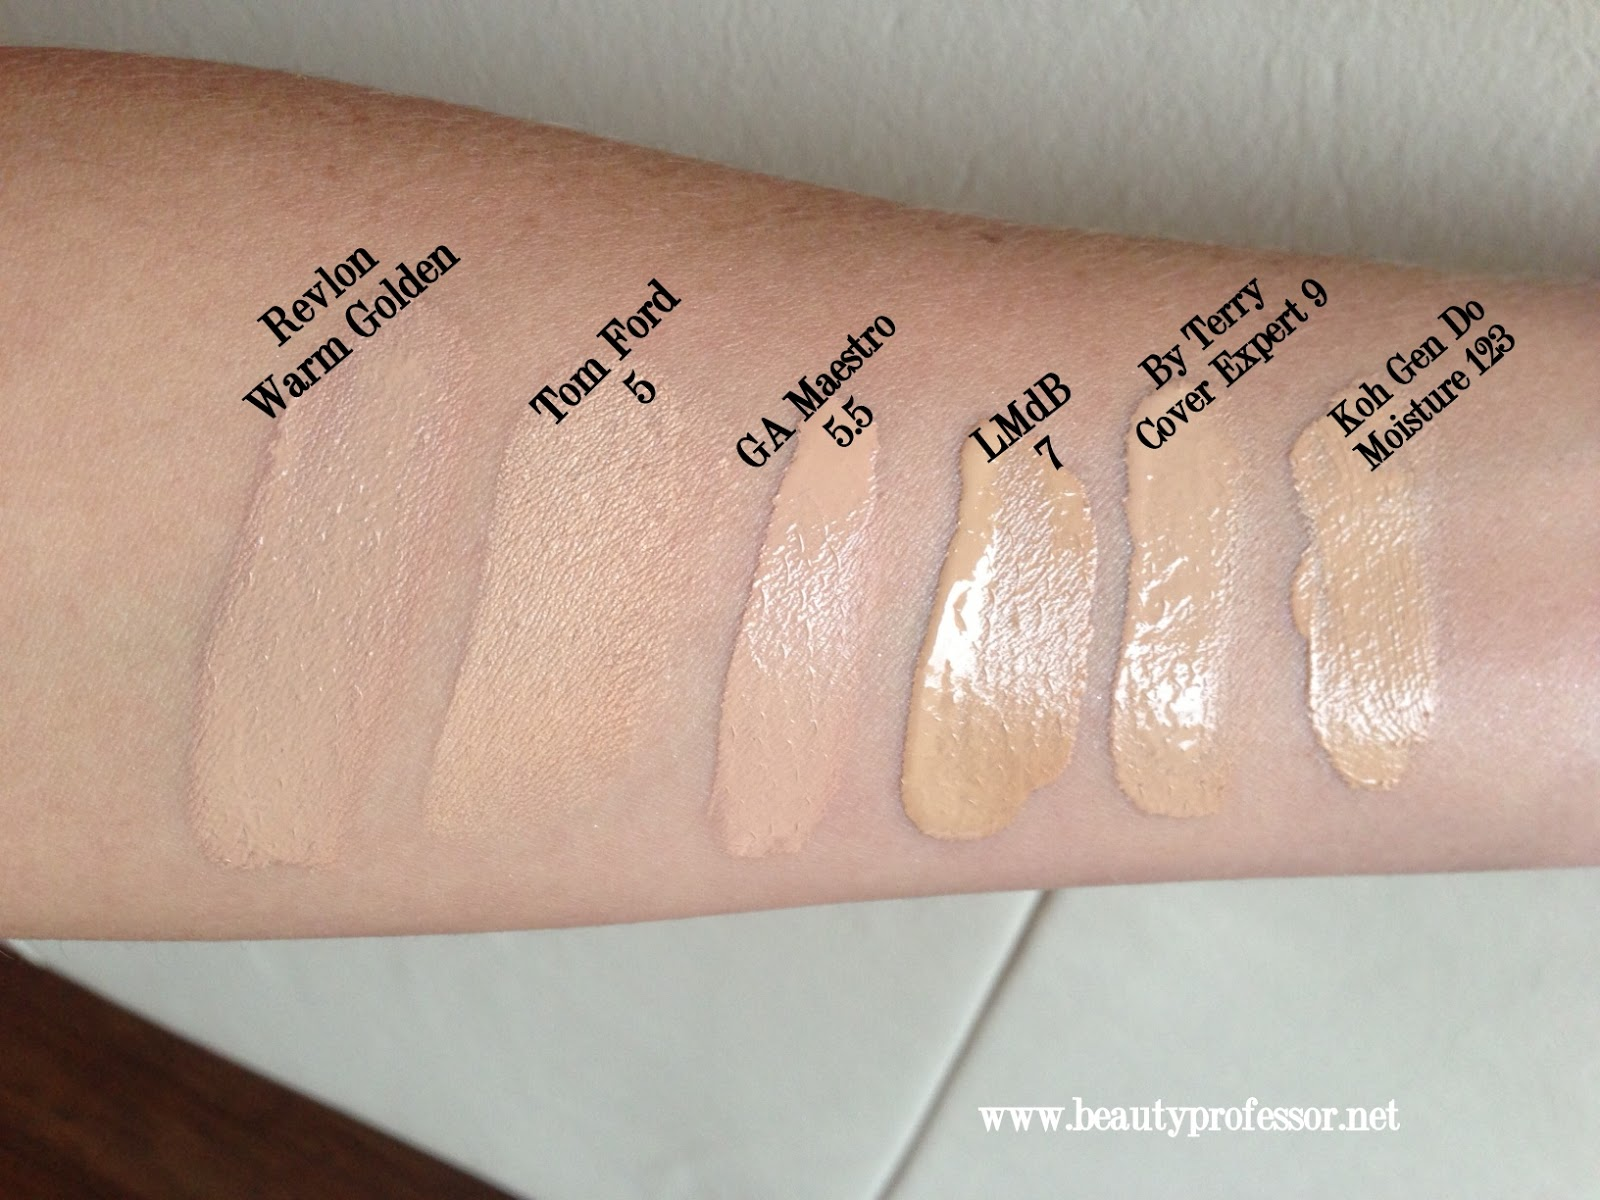 ColorStay Full Cover Foundation by Revlon #5